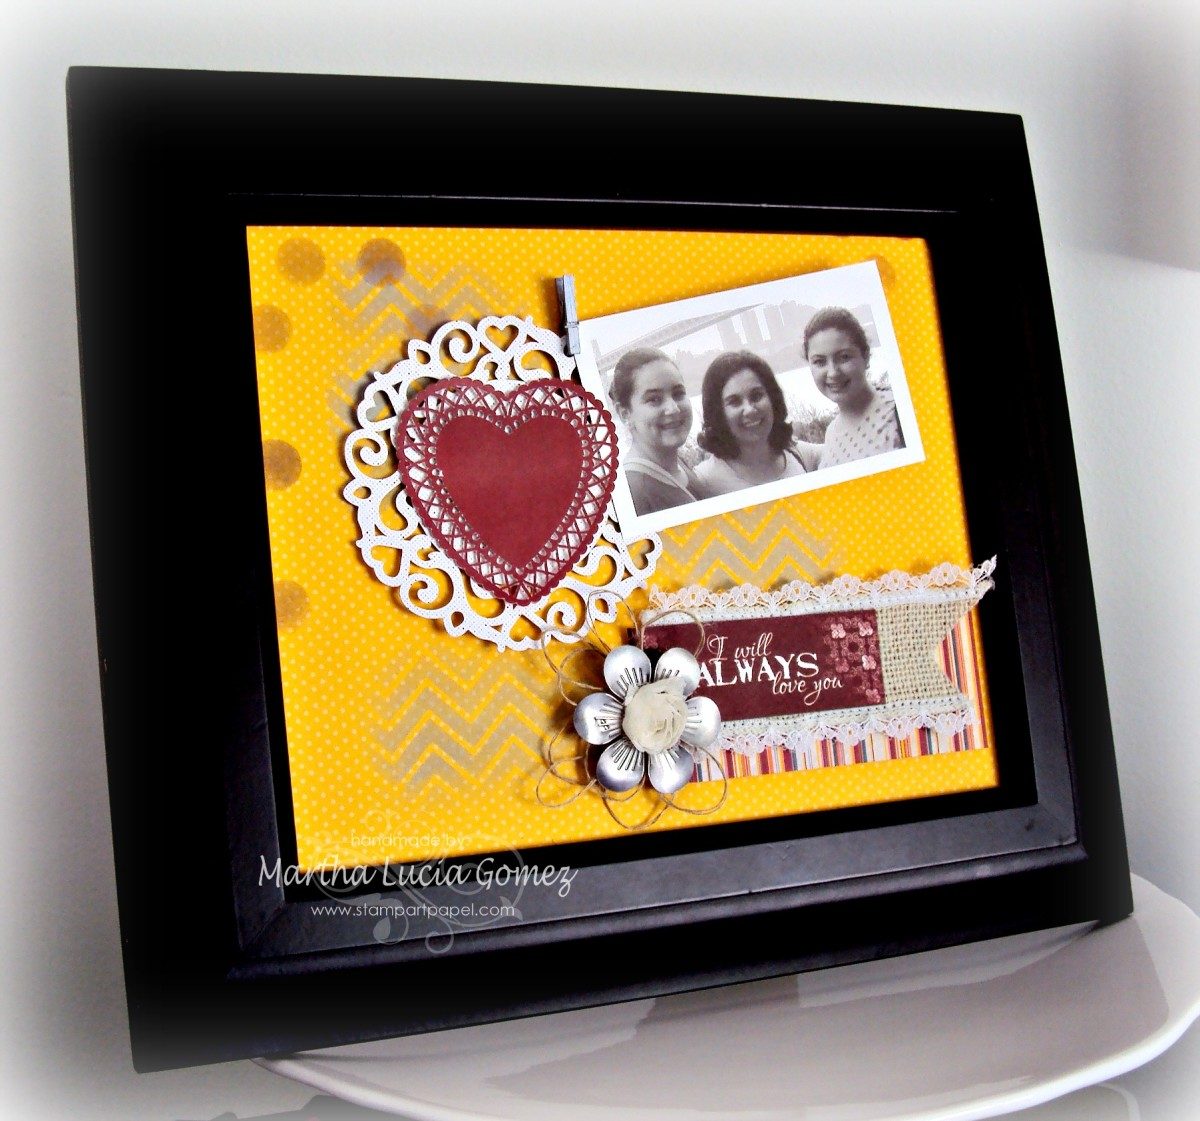 I Will Always Love You Frame by Martha Lucia Gomez for Quick Quotes - SIEMPRE TE AMARE